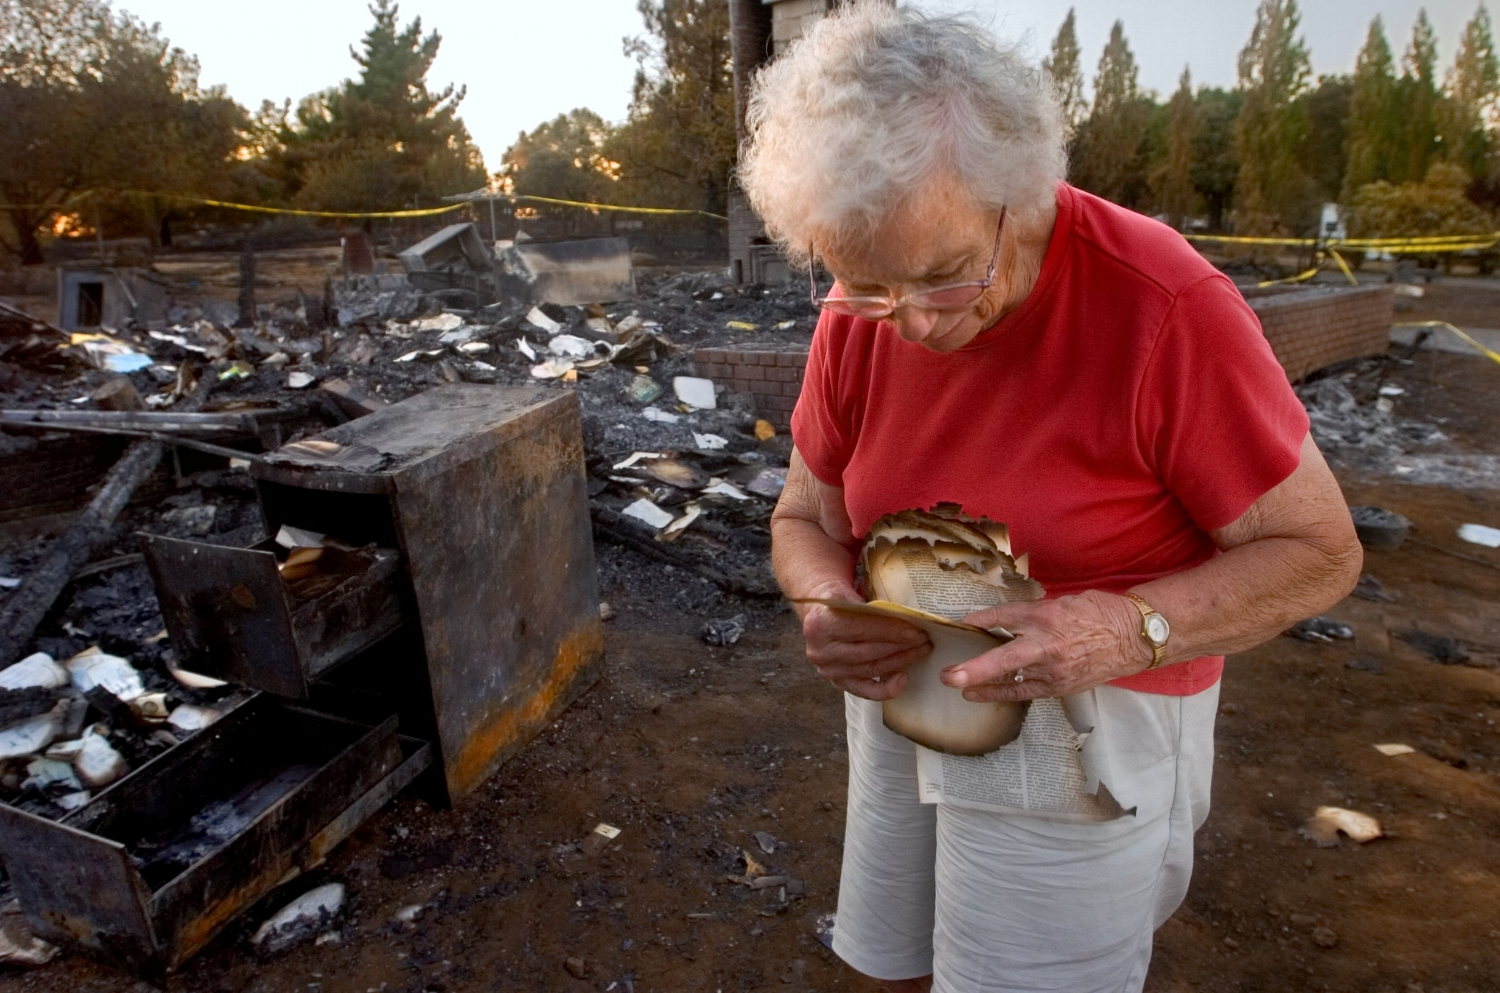 Edith Hoffman picks through the ashes of her home in El Dorado on Wednesday July 19, 2006 after it was destroyed by a wild fire.